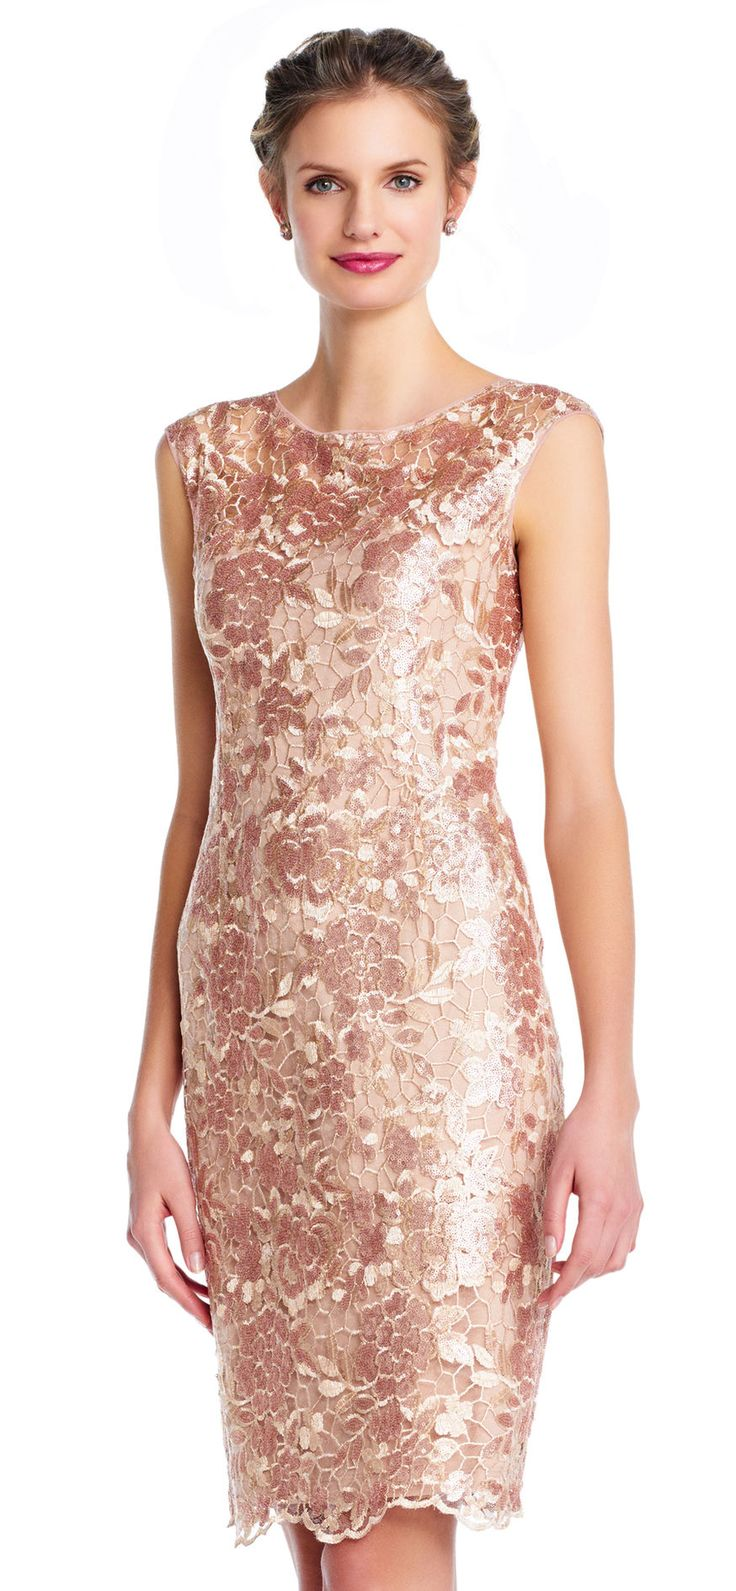 Adrianna Papell | Sequin Floral Lace Sheath Dress with Illusion Neckline